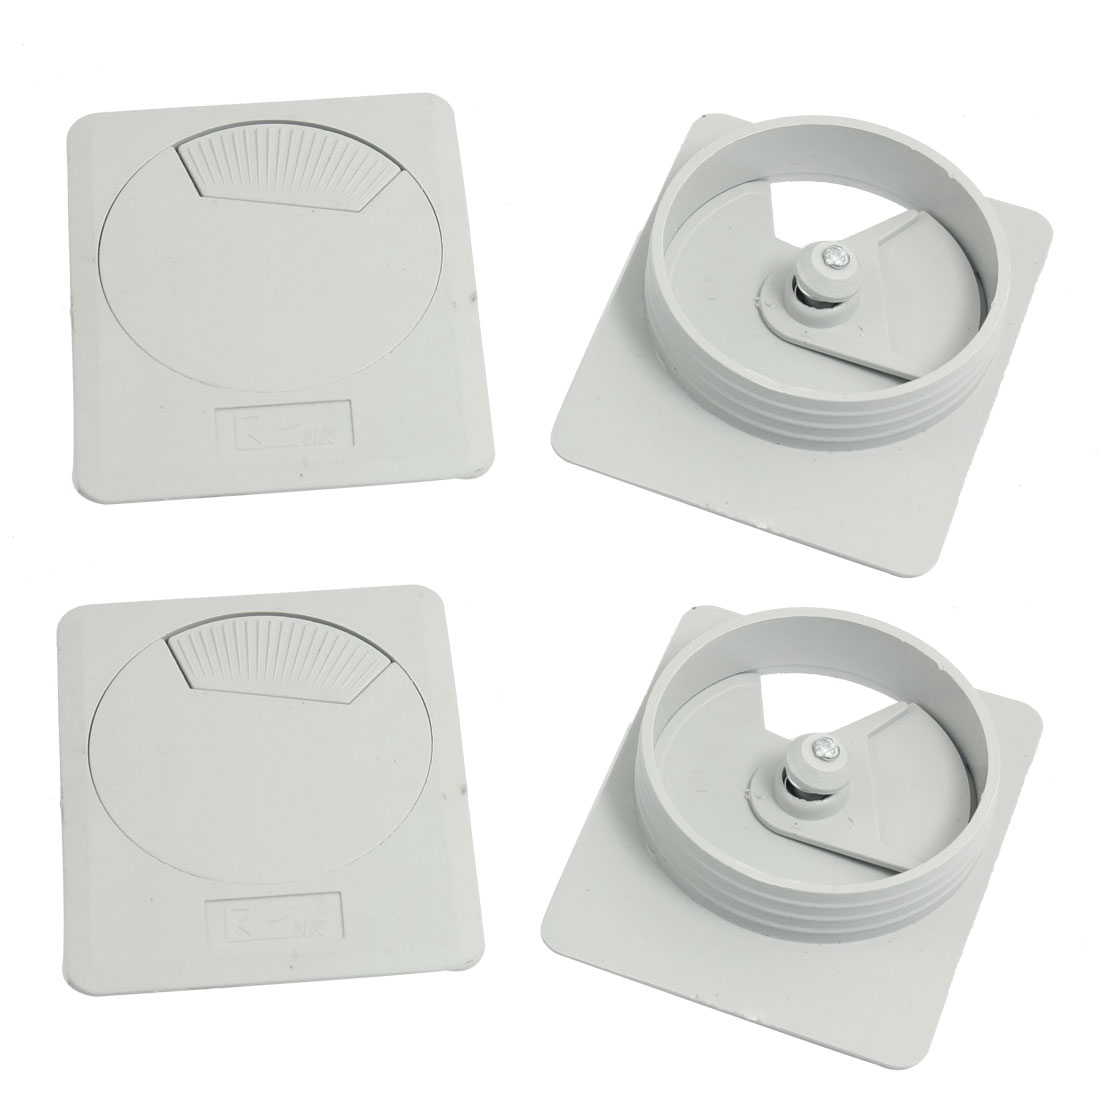 4 Pcs Desktop Computer 60mm Mount Rectangle Light Gray Plastic Cable Grommet